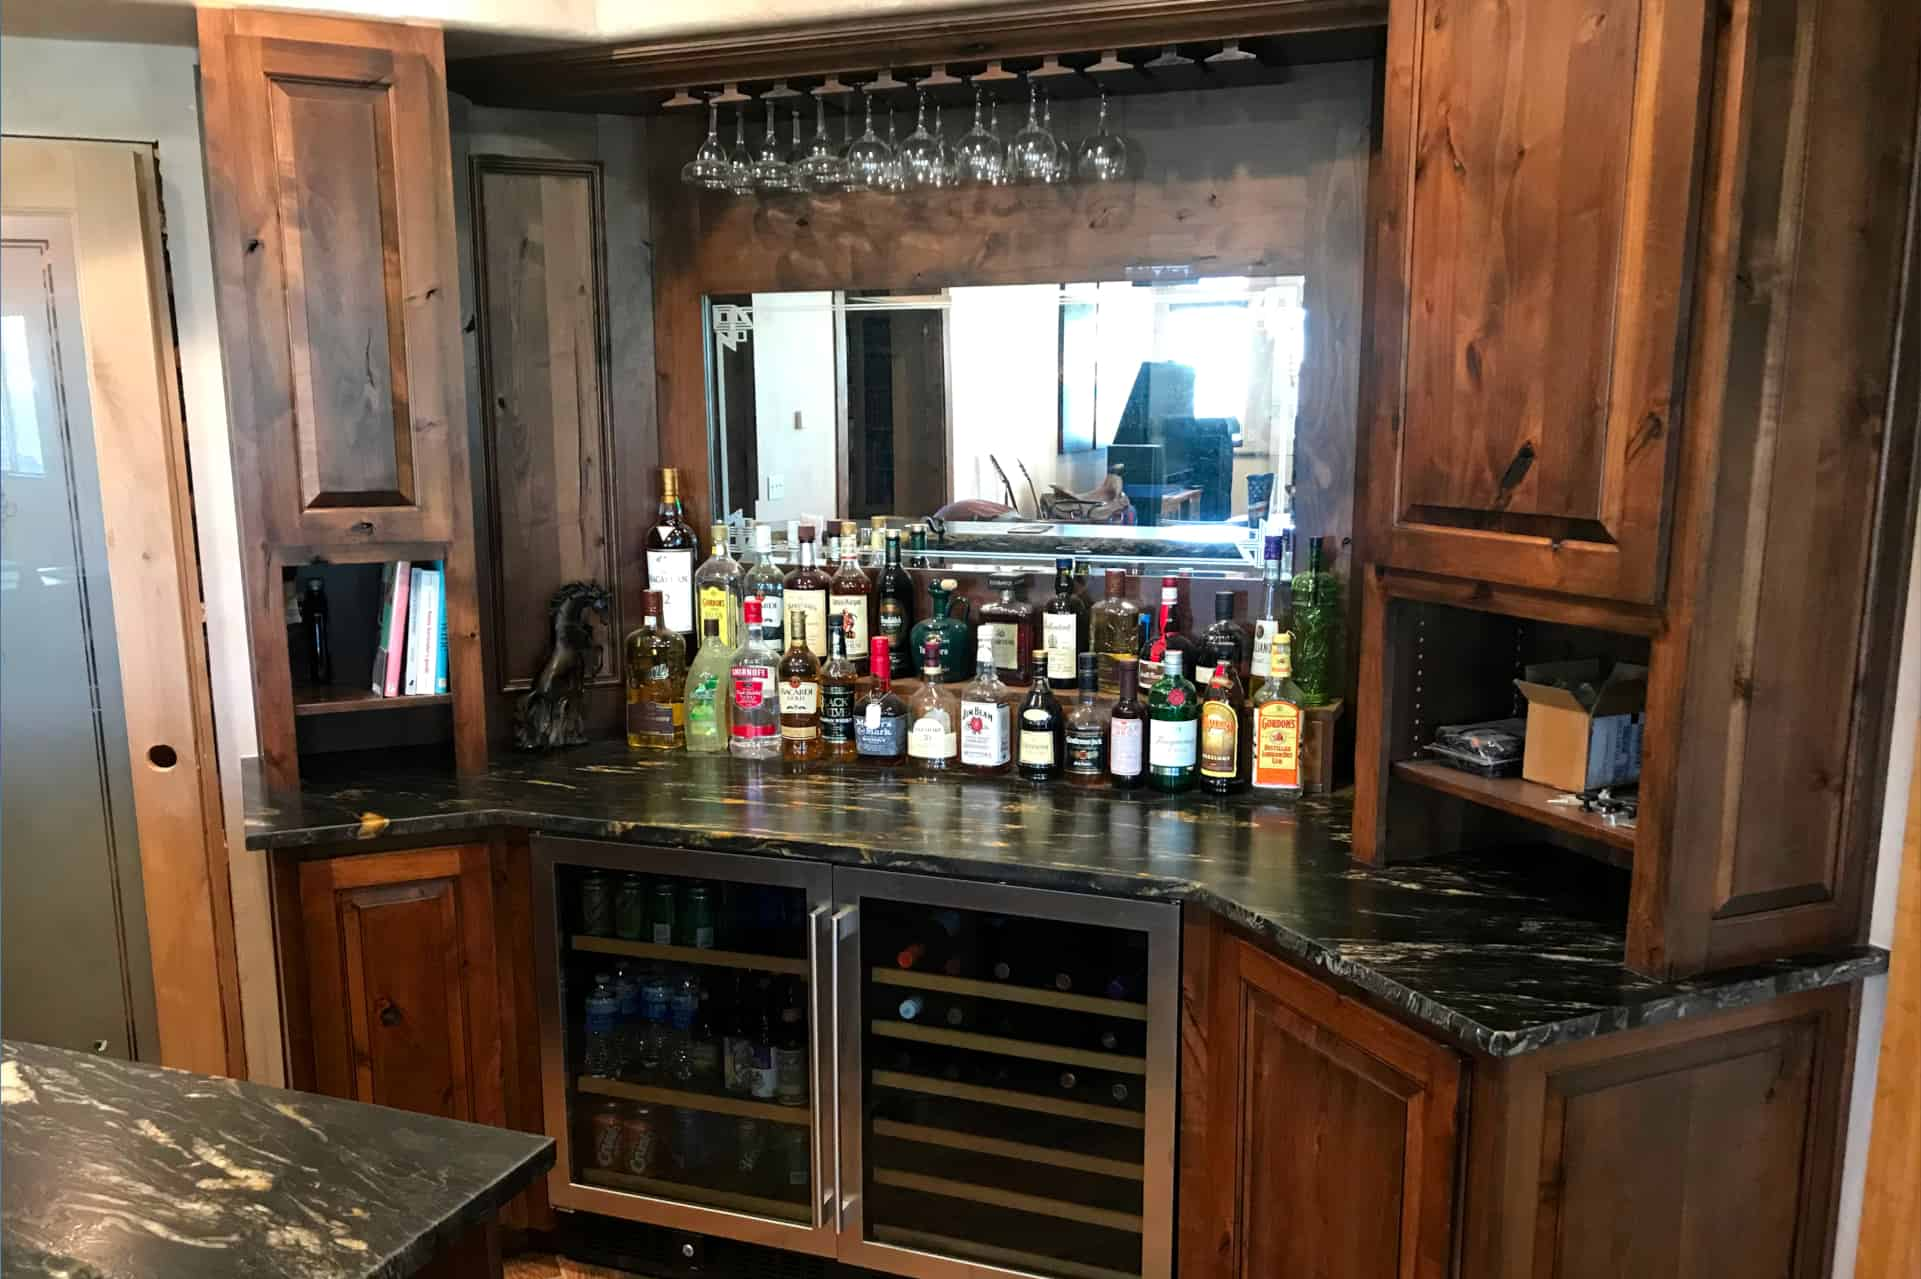 Wet Bar, Bars by Mark Stephens, The Wooden Wish, Parker, Colorado